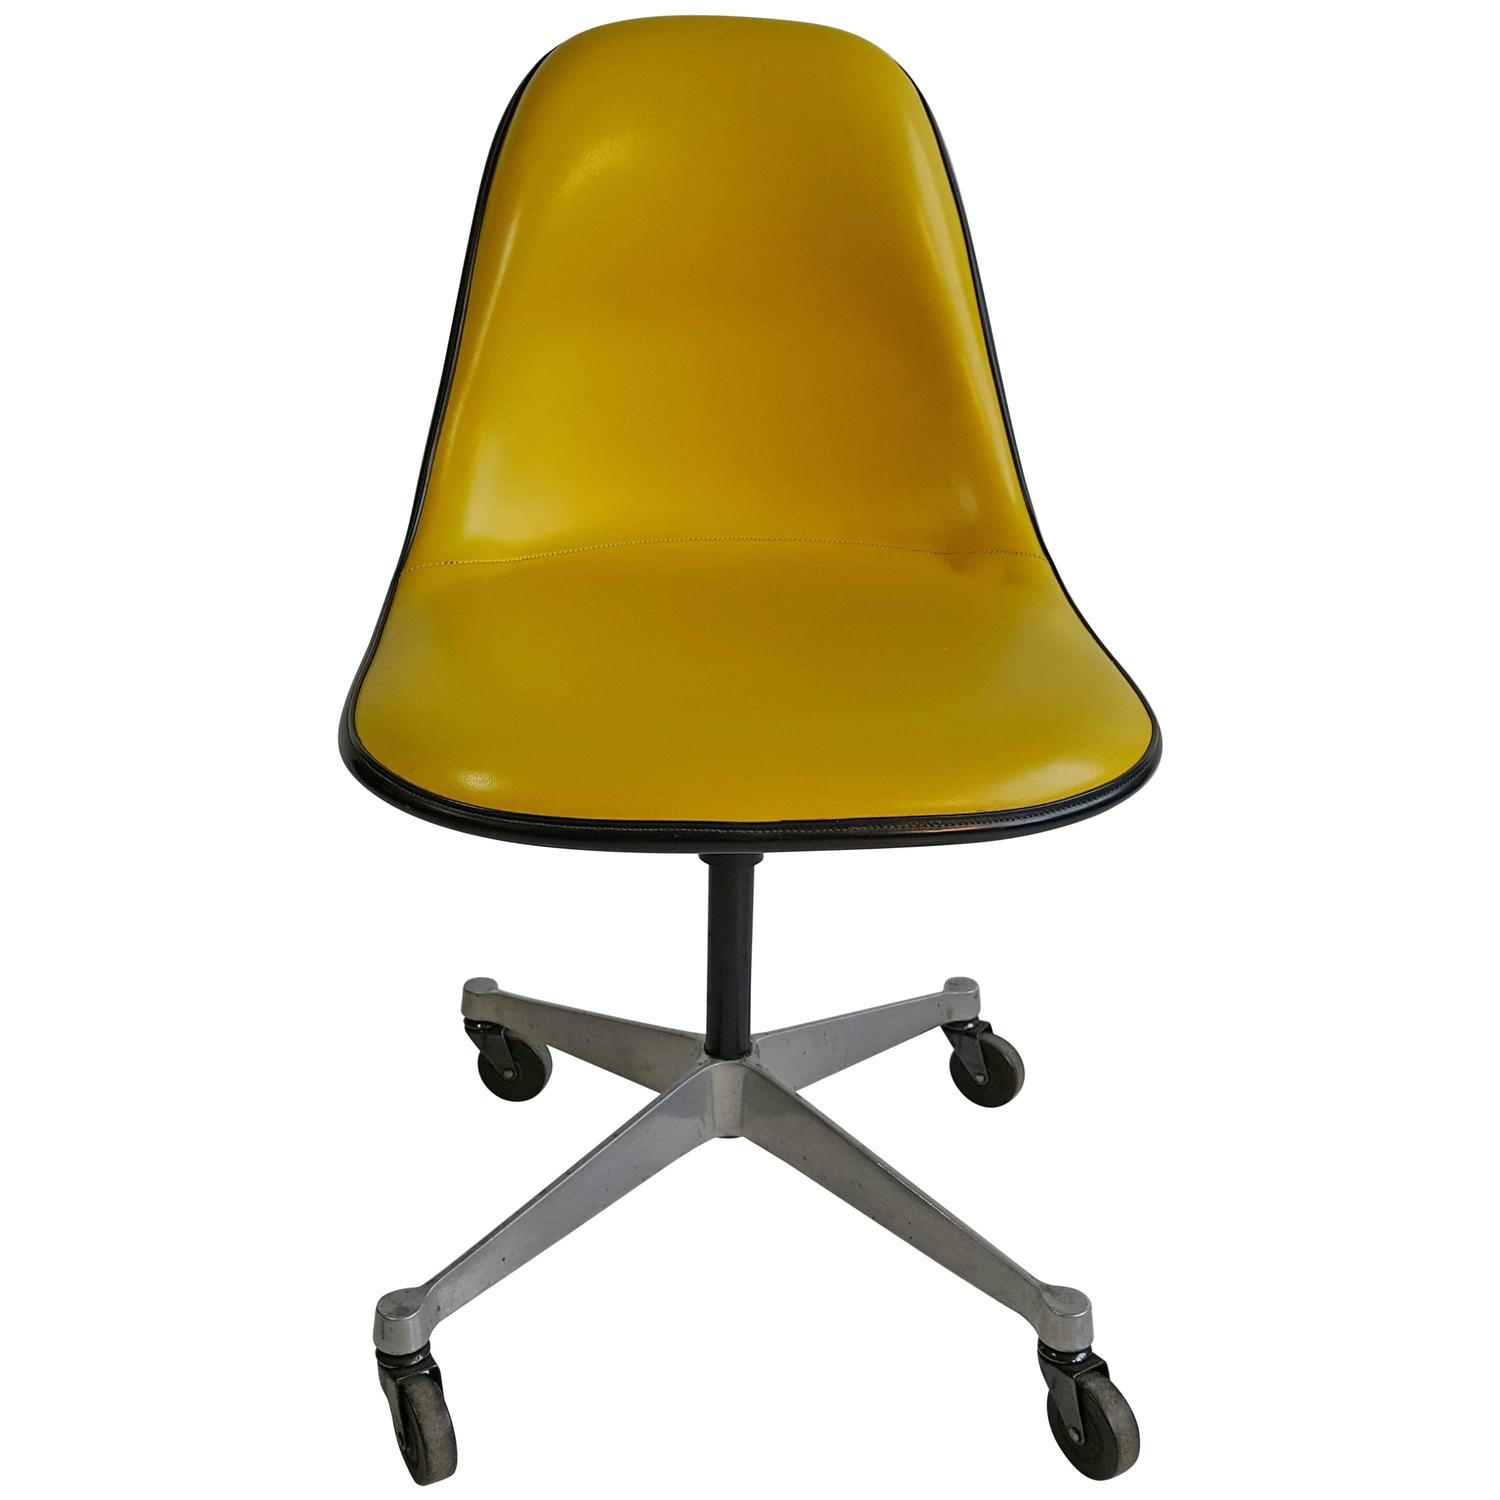 Charles and Ray Eames PSCC Padded Desk Chair by Herman Miller at